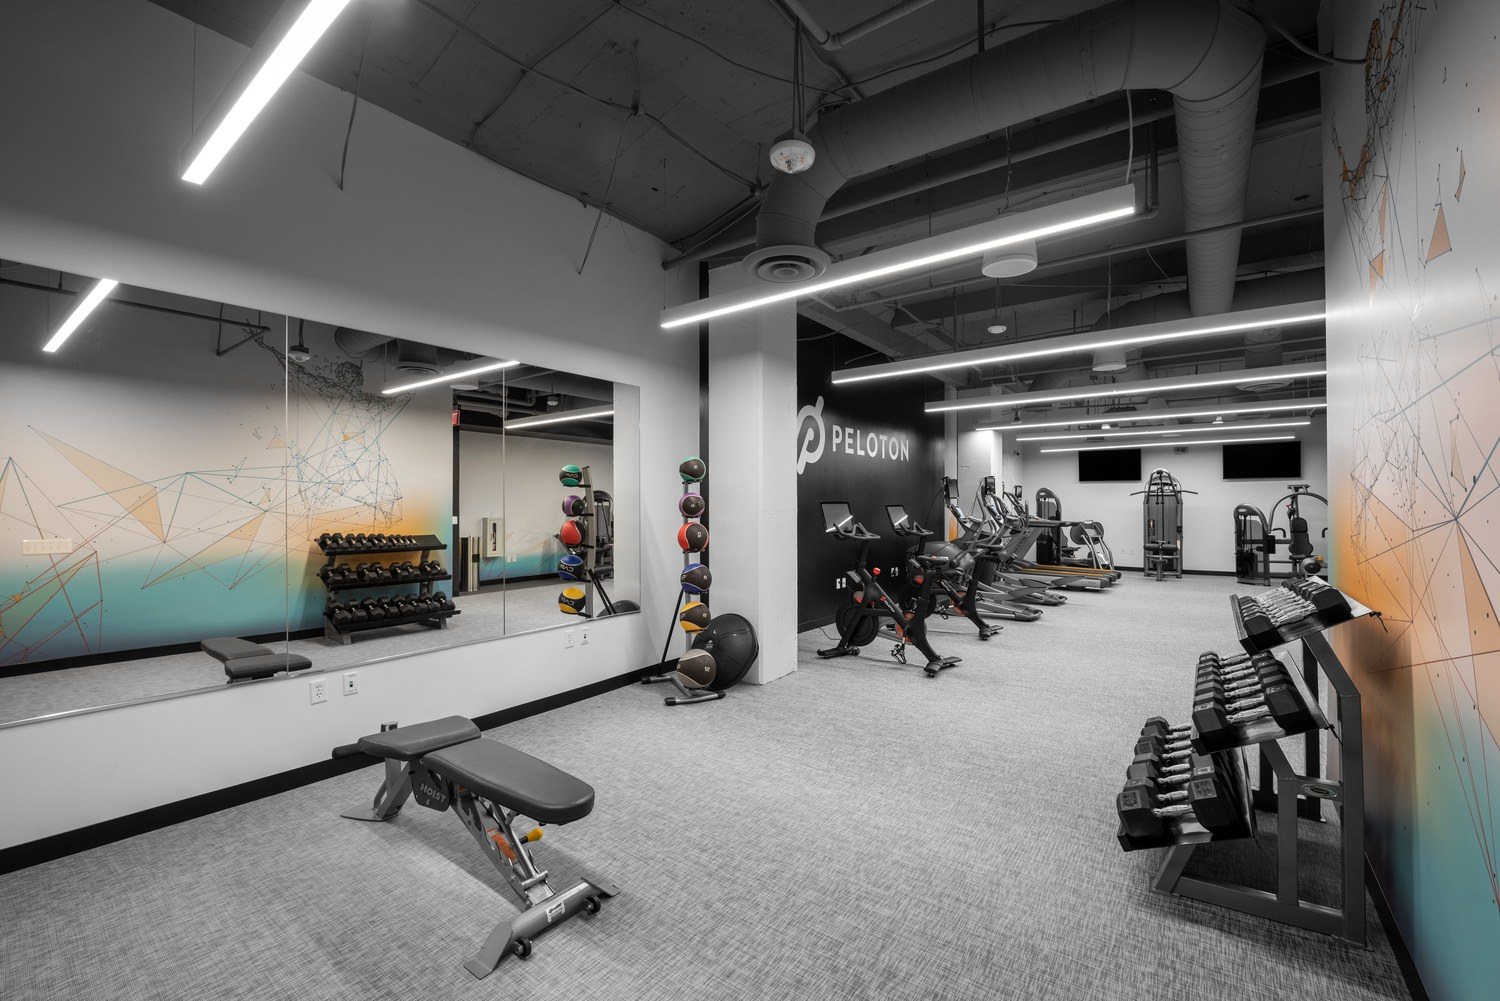 Indoor image of the gym with many aerobic instruments with carpet flooring.